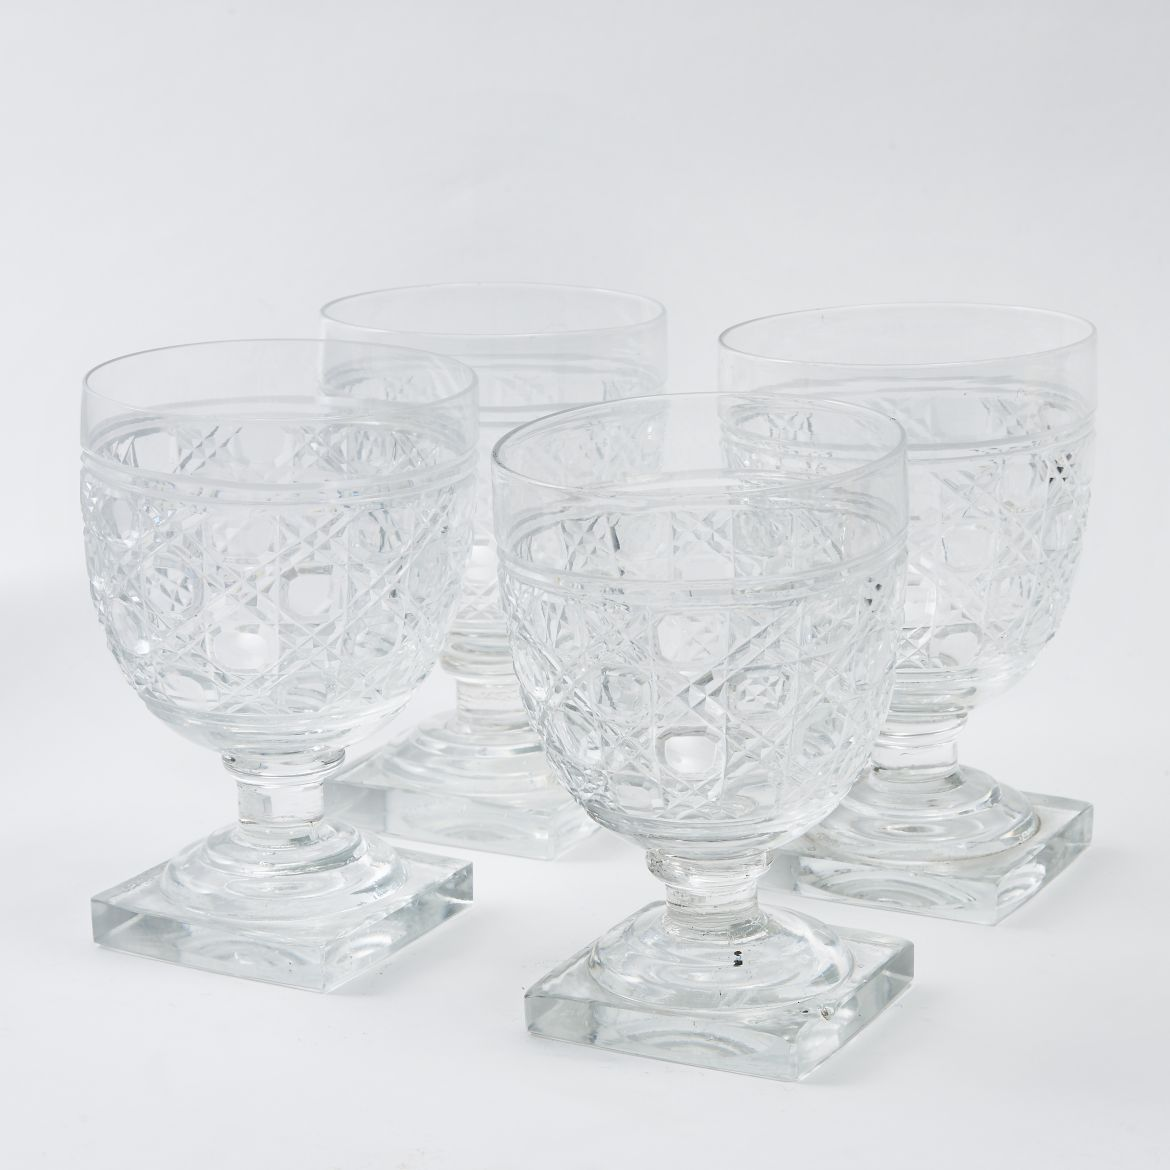 Four Hobnail Cut Goblets